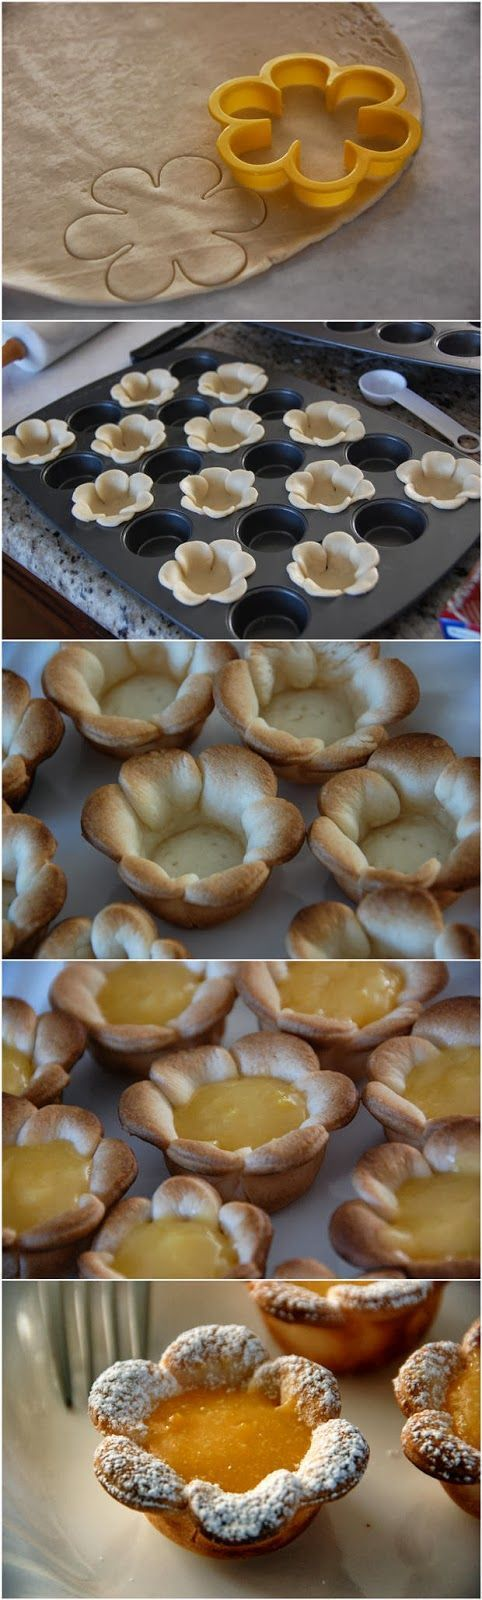 Flower shaped Mini Lemon Curd Tarts..this is a cute design for any mini pie shell!